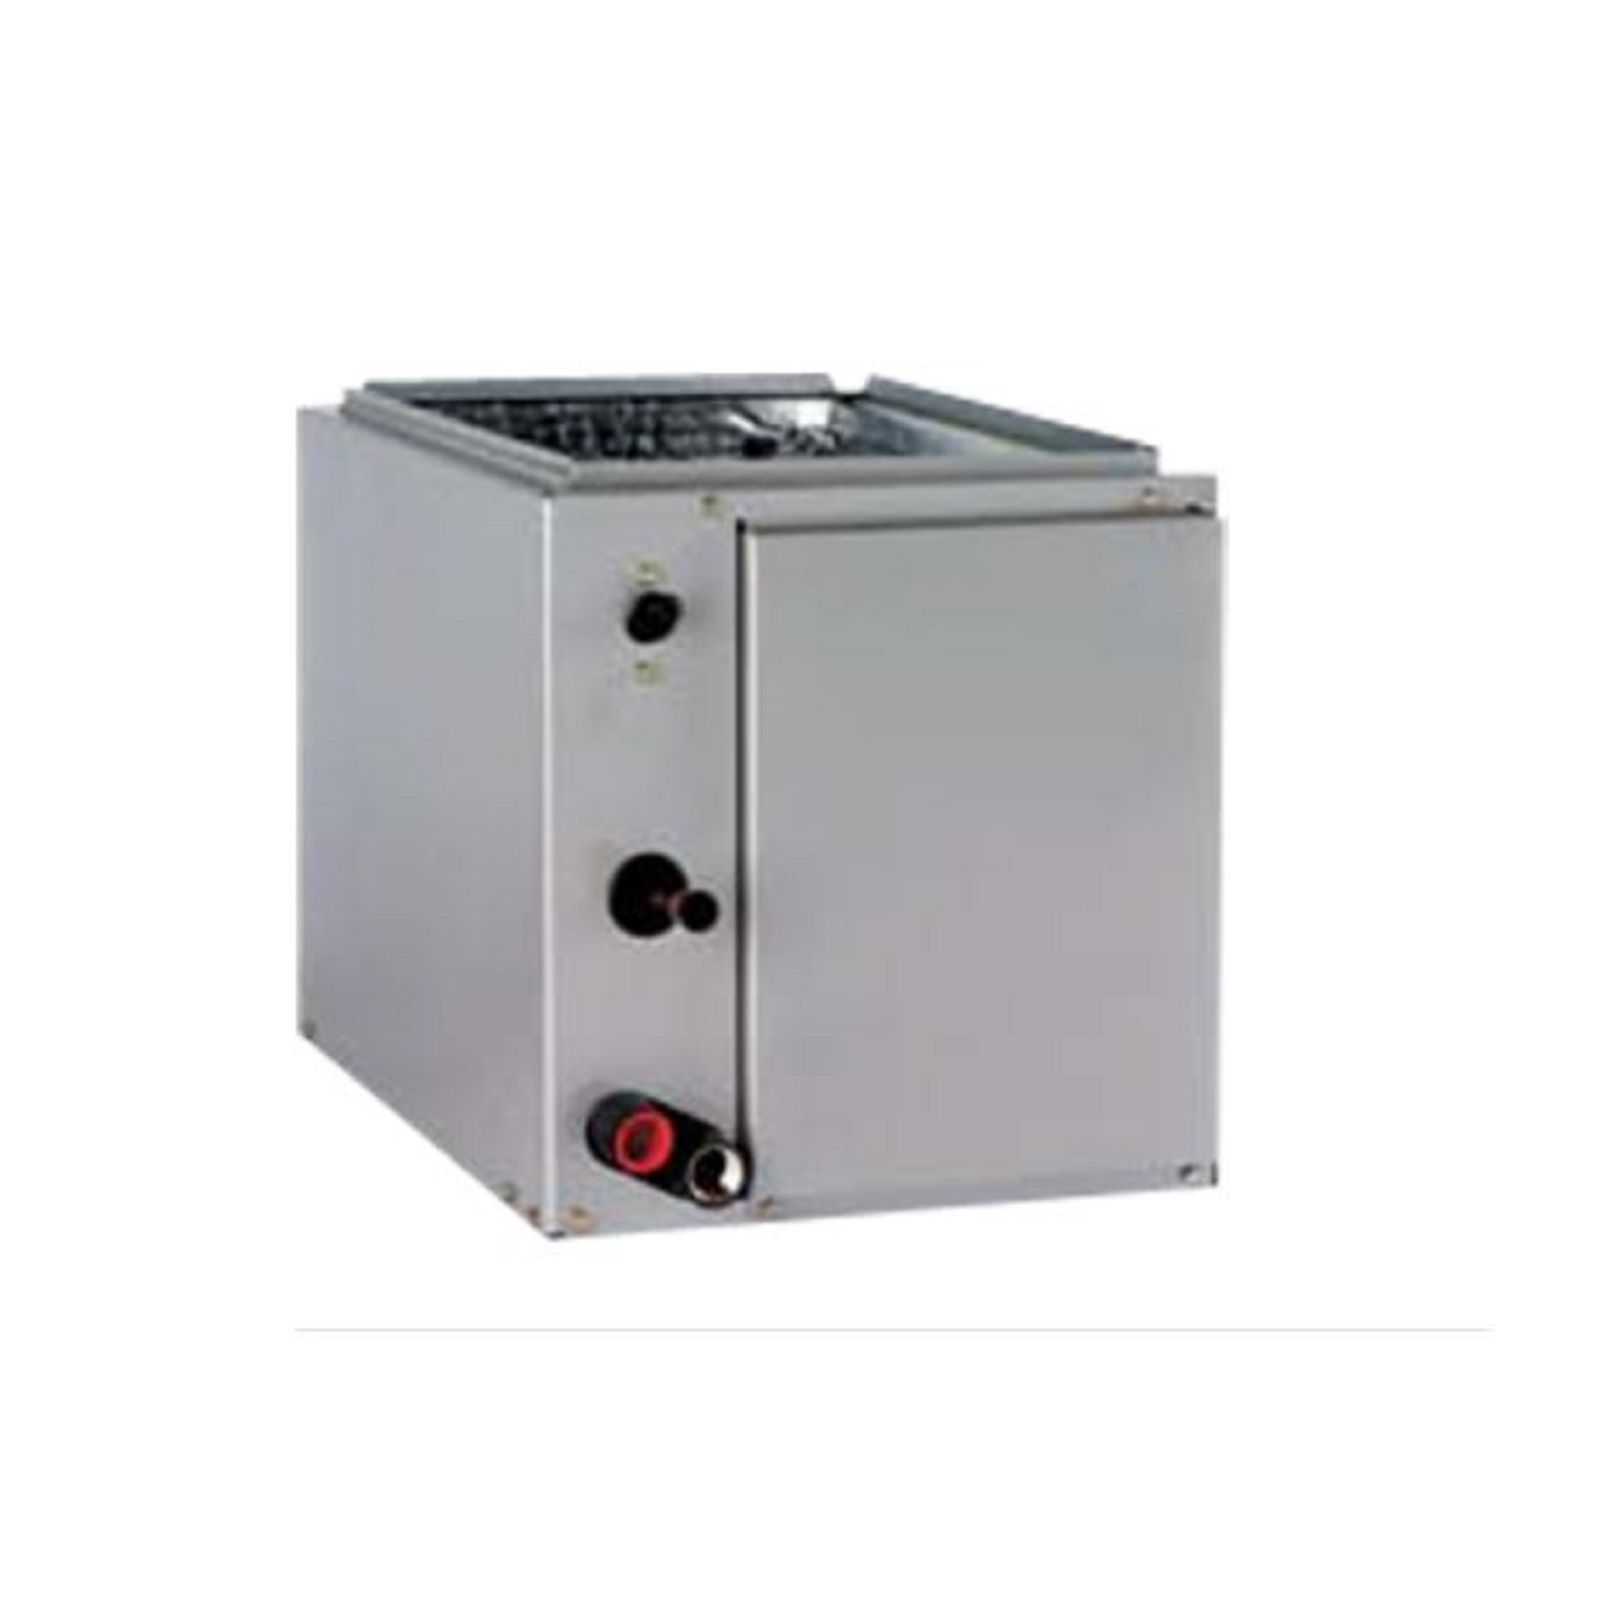 "Tempstar END4X48L21A - 4 Ton, R410A, Cased Up/Down Flow, N Type Evaporator Coil, With TXV, 21"" Wide"